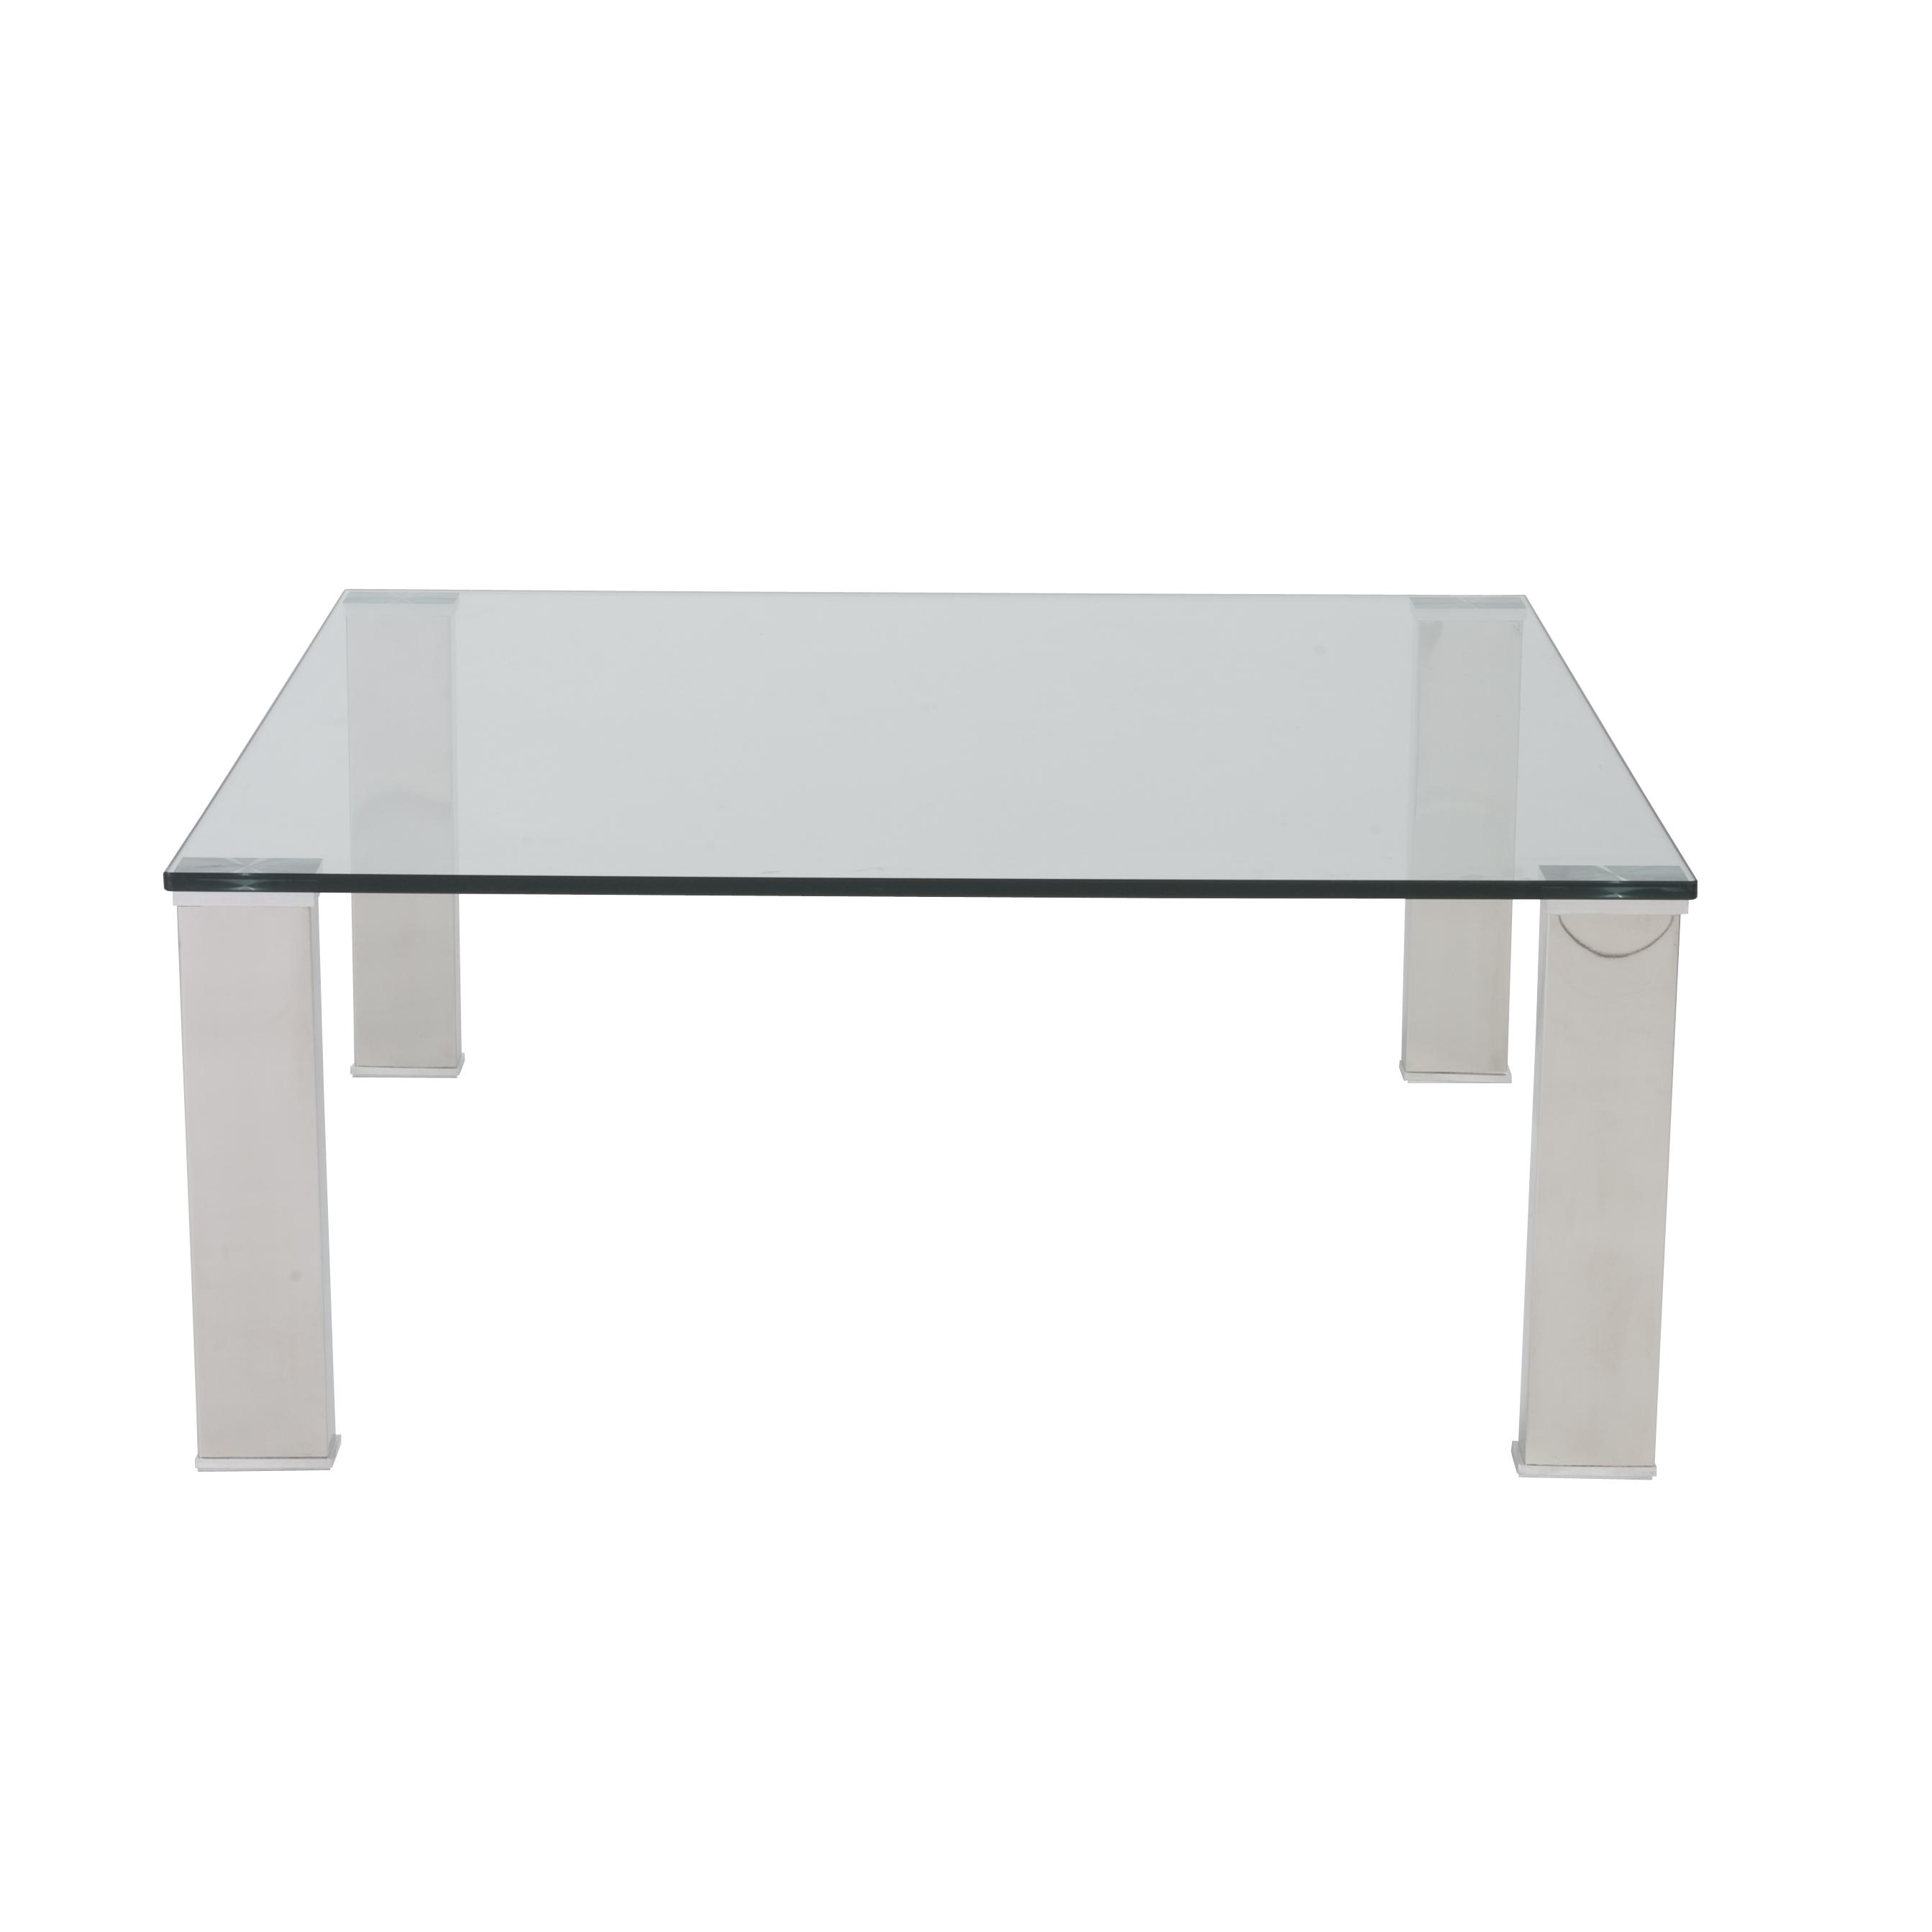 Beth 36 inch coffee table euro style beth 36 inch coffee table 38702 kit geotapseo Image collections